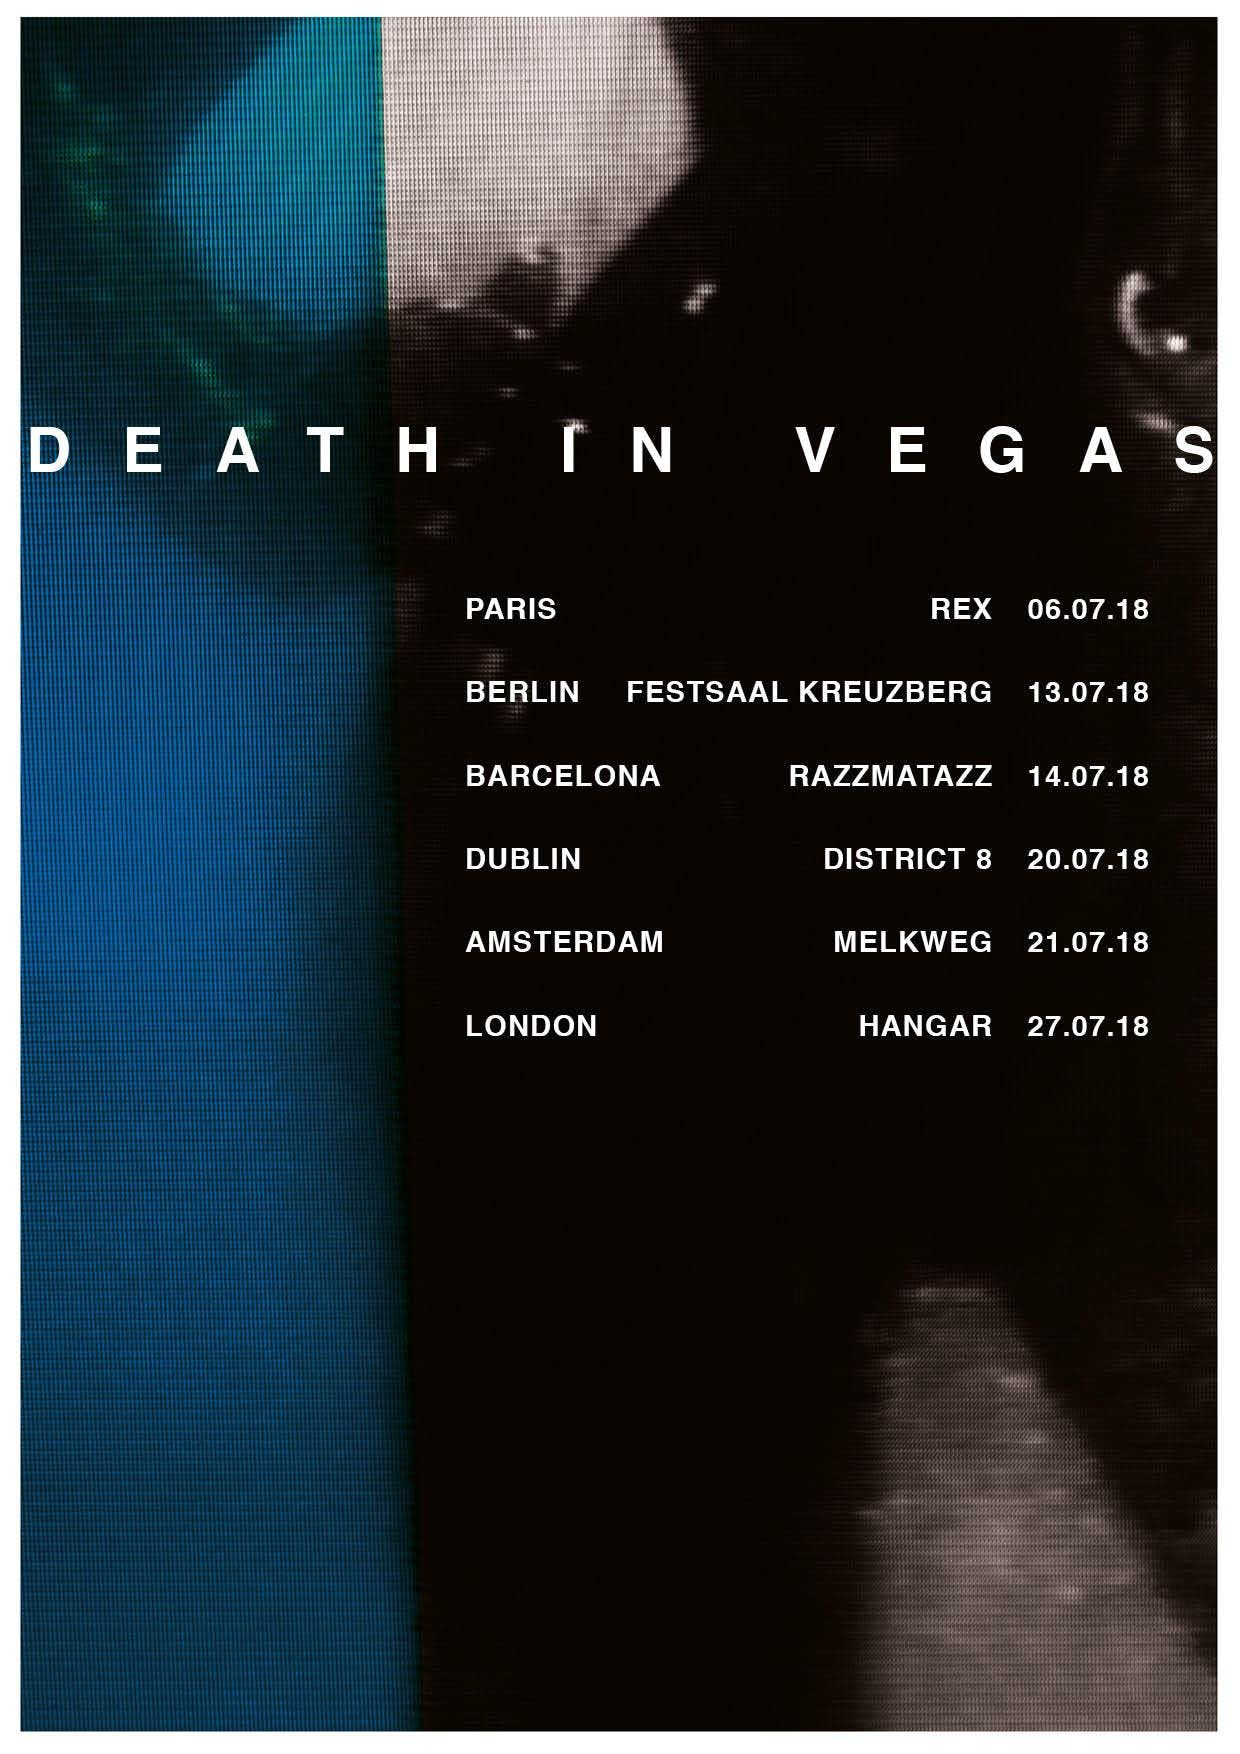 Death In Vegas (Live) at District 8